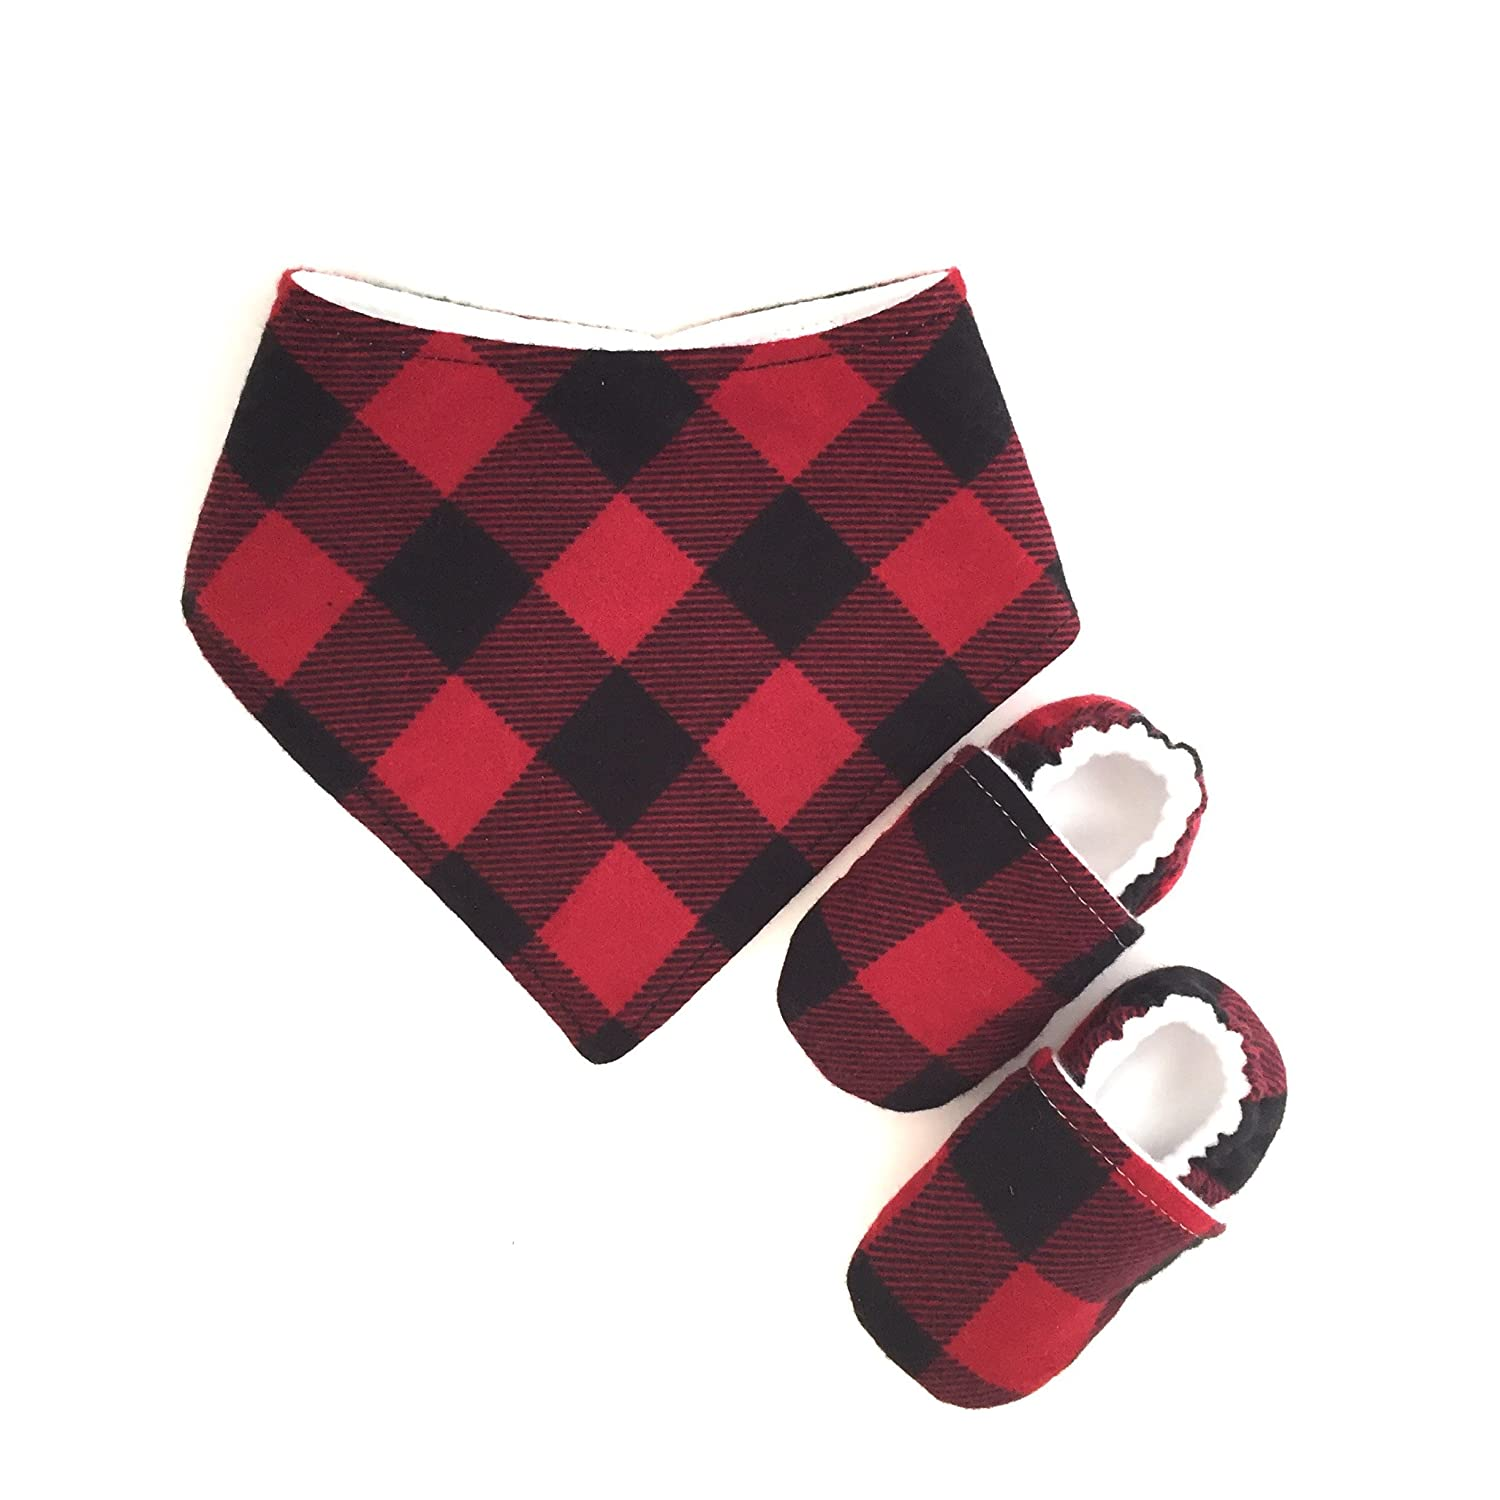 Buffalo Plaid Baby Set, Handmade Baby Gifts, Baby Shower Gift, Handmade in Florida, First Birthday Gift, Baby Shoes and Bib Set, Handmade Baby Gift Set, Gift Idea for Baby, New baby, Newborn Set